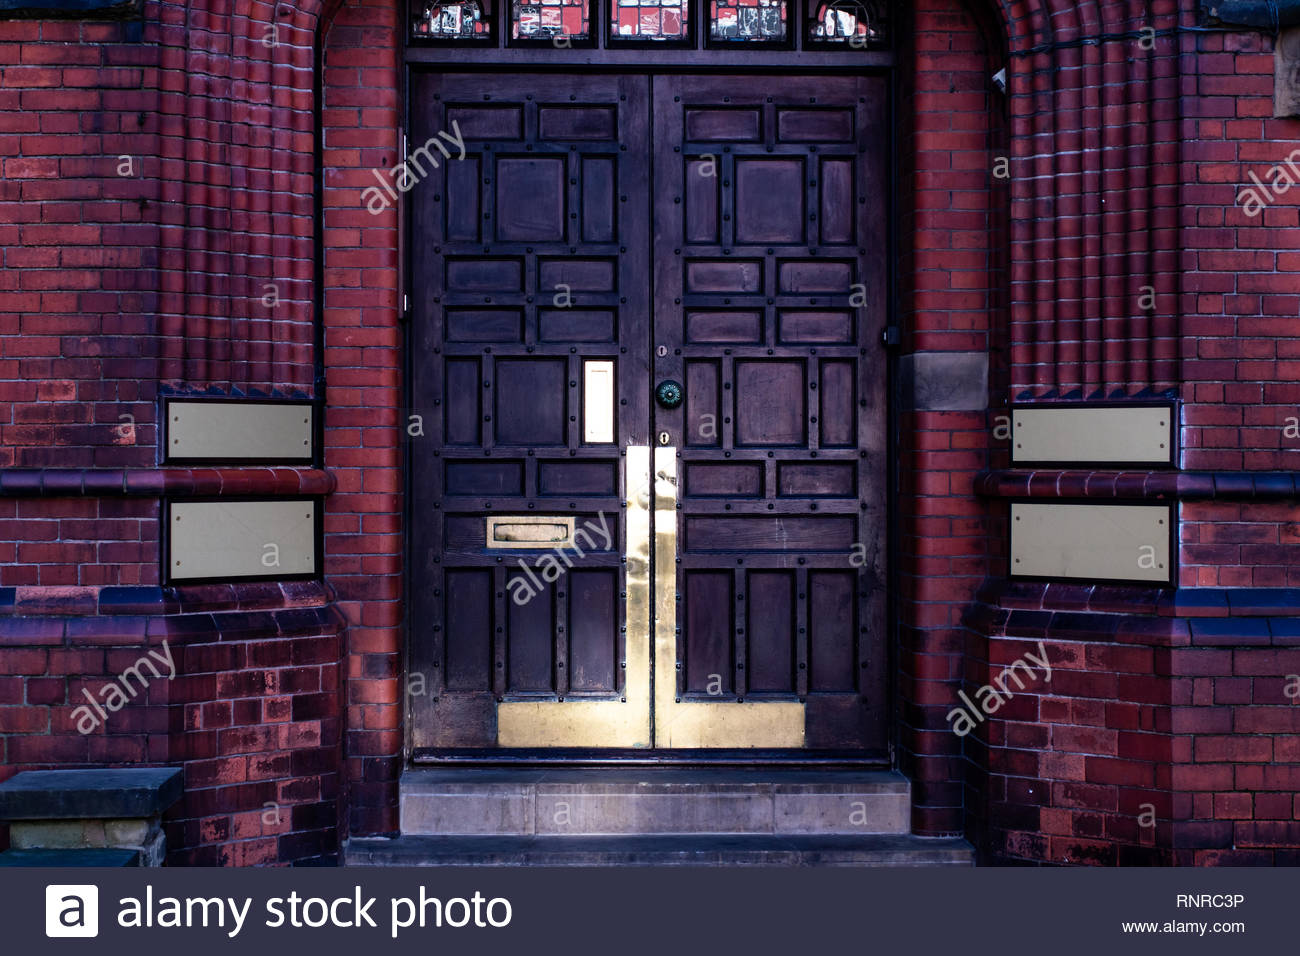 Old wooden doors with 4 blank golden plaques at the side on a brick wall. Stock Photo